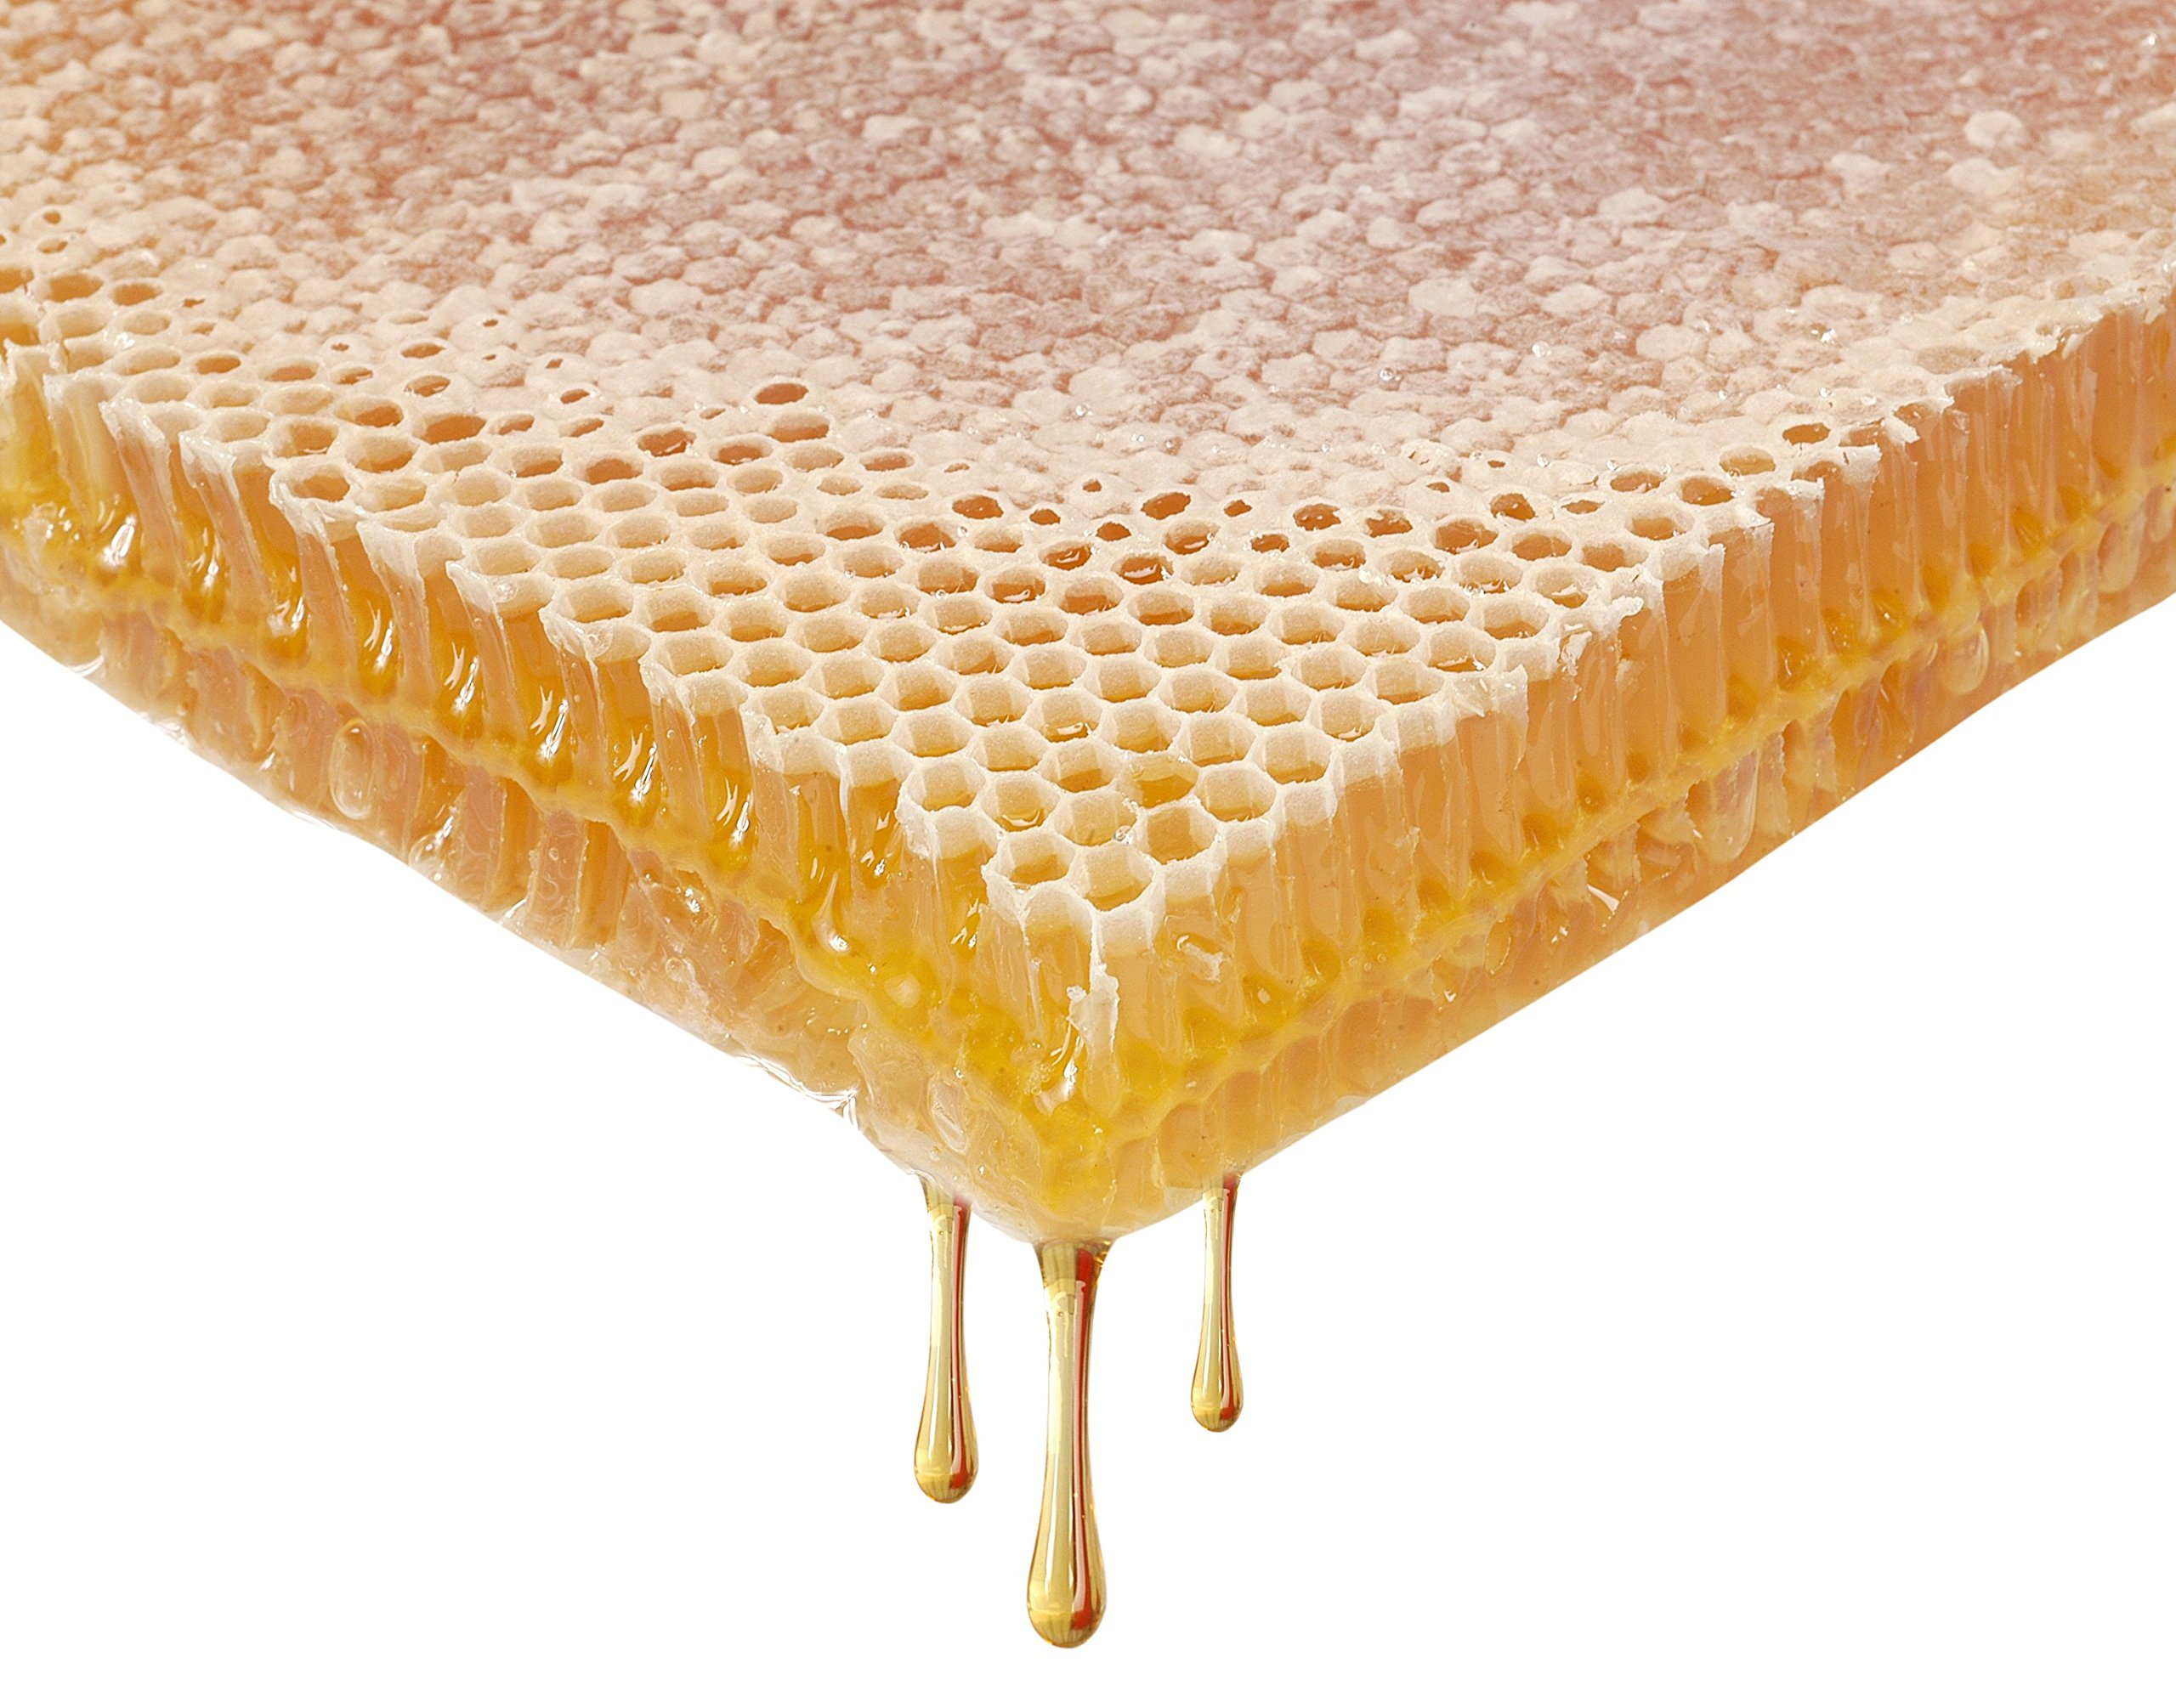 Honey Land Whole Block Sheet of Pure Raw Honey Comb 100% Organic & Unfiltered A Delicious Unique & Fun Dessert 3.5kg 7.7lb by Honeyland